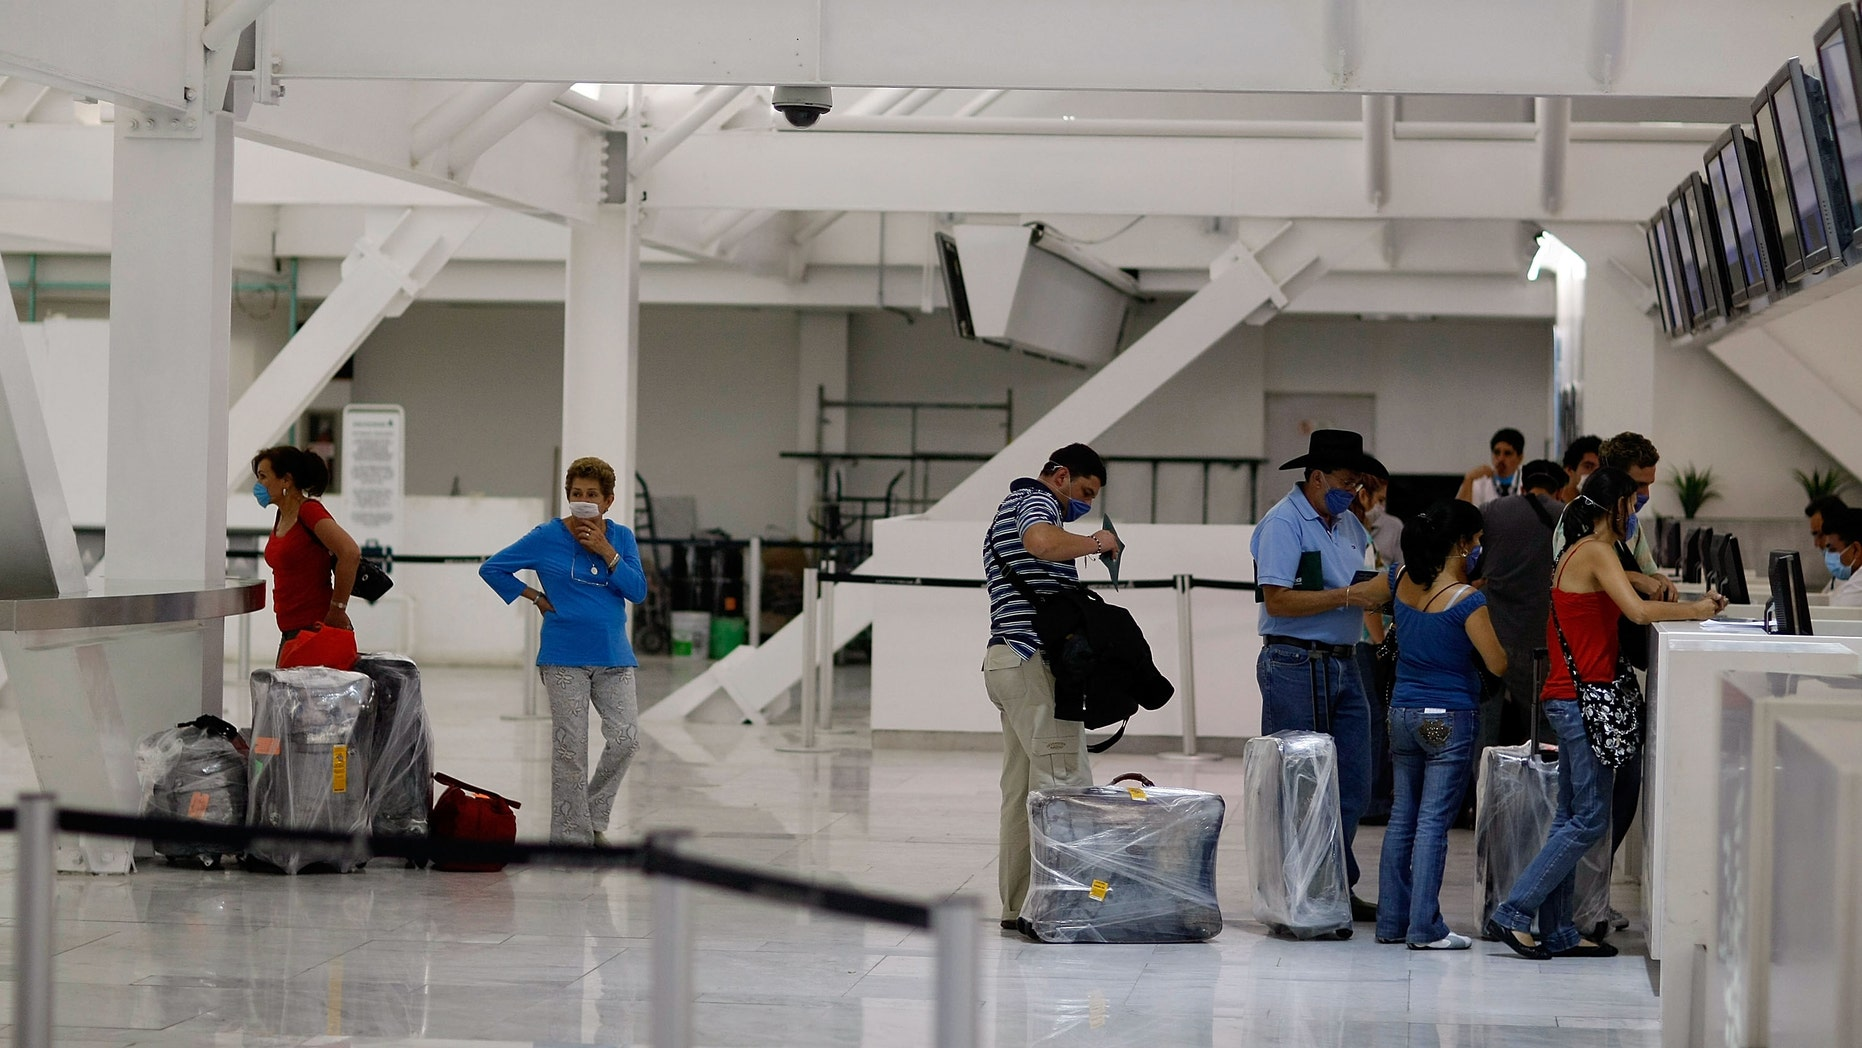 """MEXICO CITY - APRIL 29:  People wear surgical masks to help prevent contracting the swine flu as they check in for the Mexicana airlines flight at the Mexico City International Airport on April 29, 2009 in Mexico City, Mexico. Cases of swine flu, the strain known as H1N1 virus, have been confirmed in nine countries, including Mexico, where at least 2,400 are believed to be infected, with the number of deaths attributed to the virus believed to be more than 150. The World Health Organization today raised the threat level to """"phase 5,"""" indicating a """"pandemic is imminent.""""  (Photo by Joe Raedle/Getty Images)"""